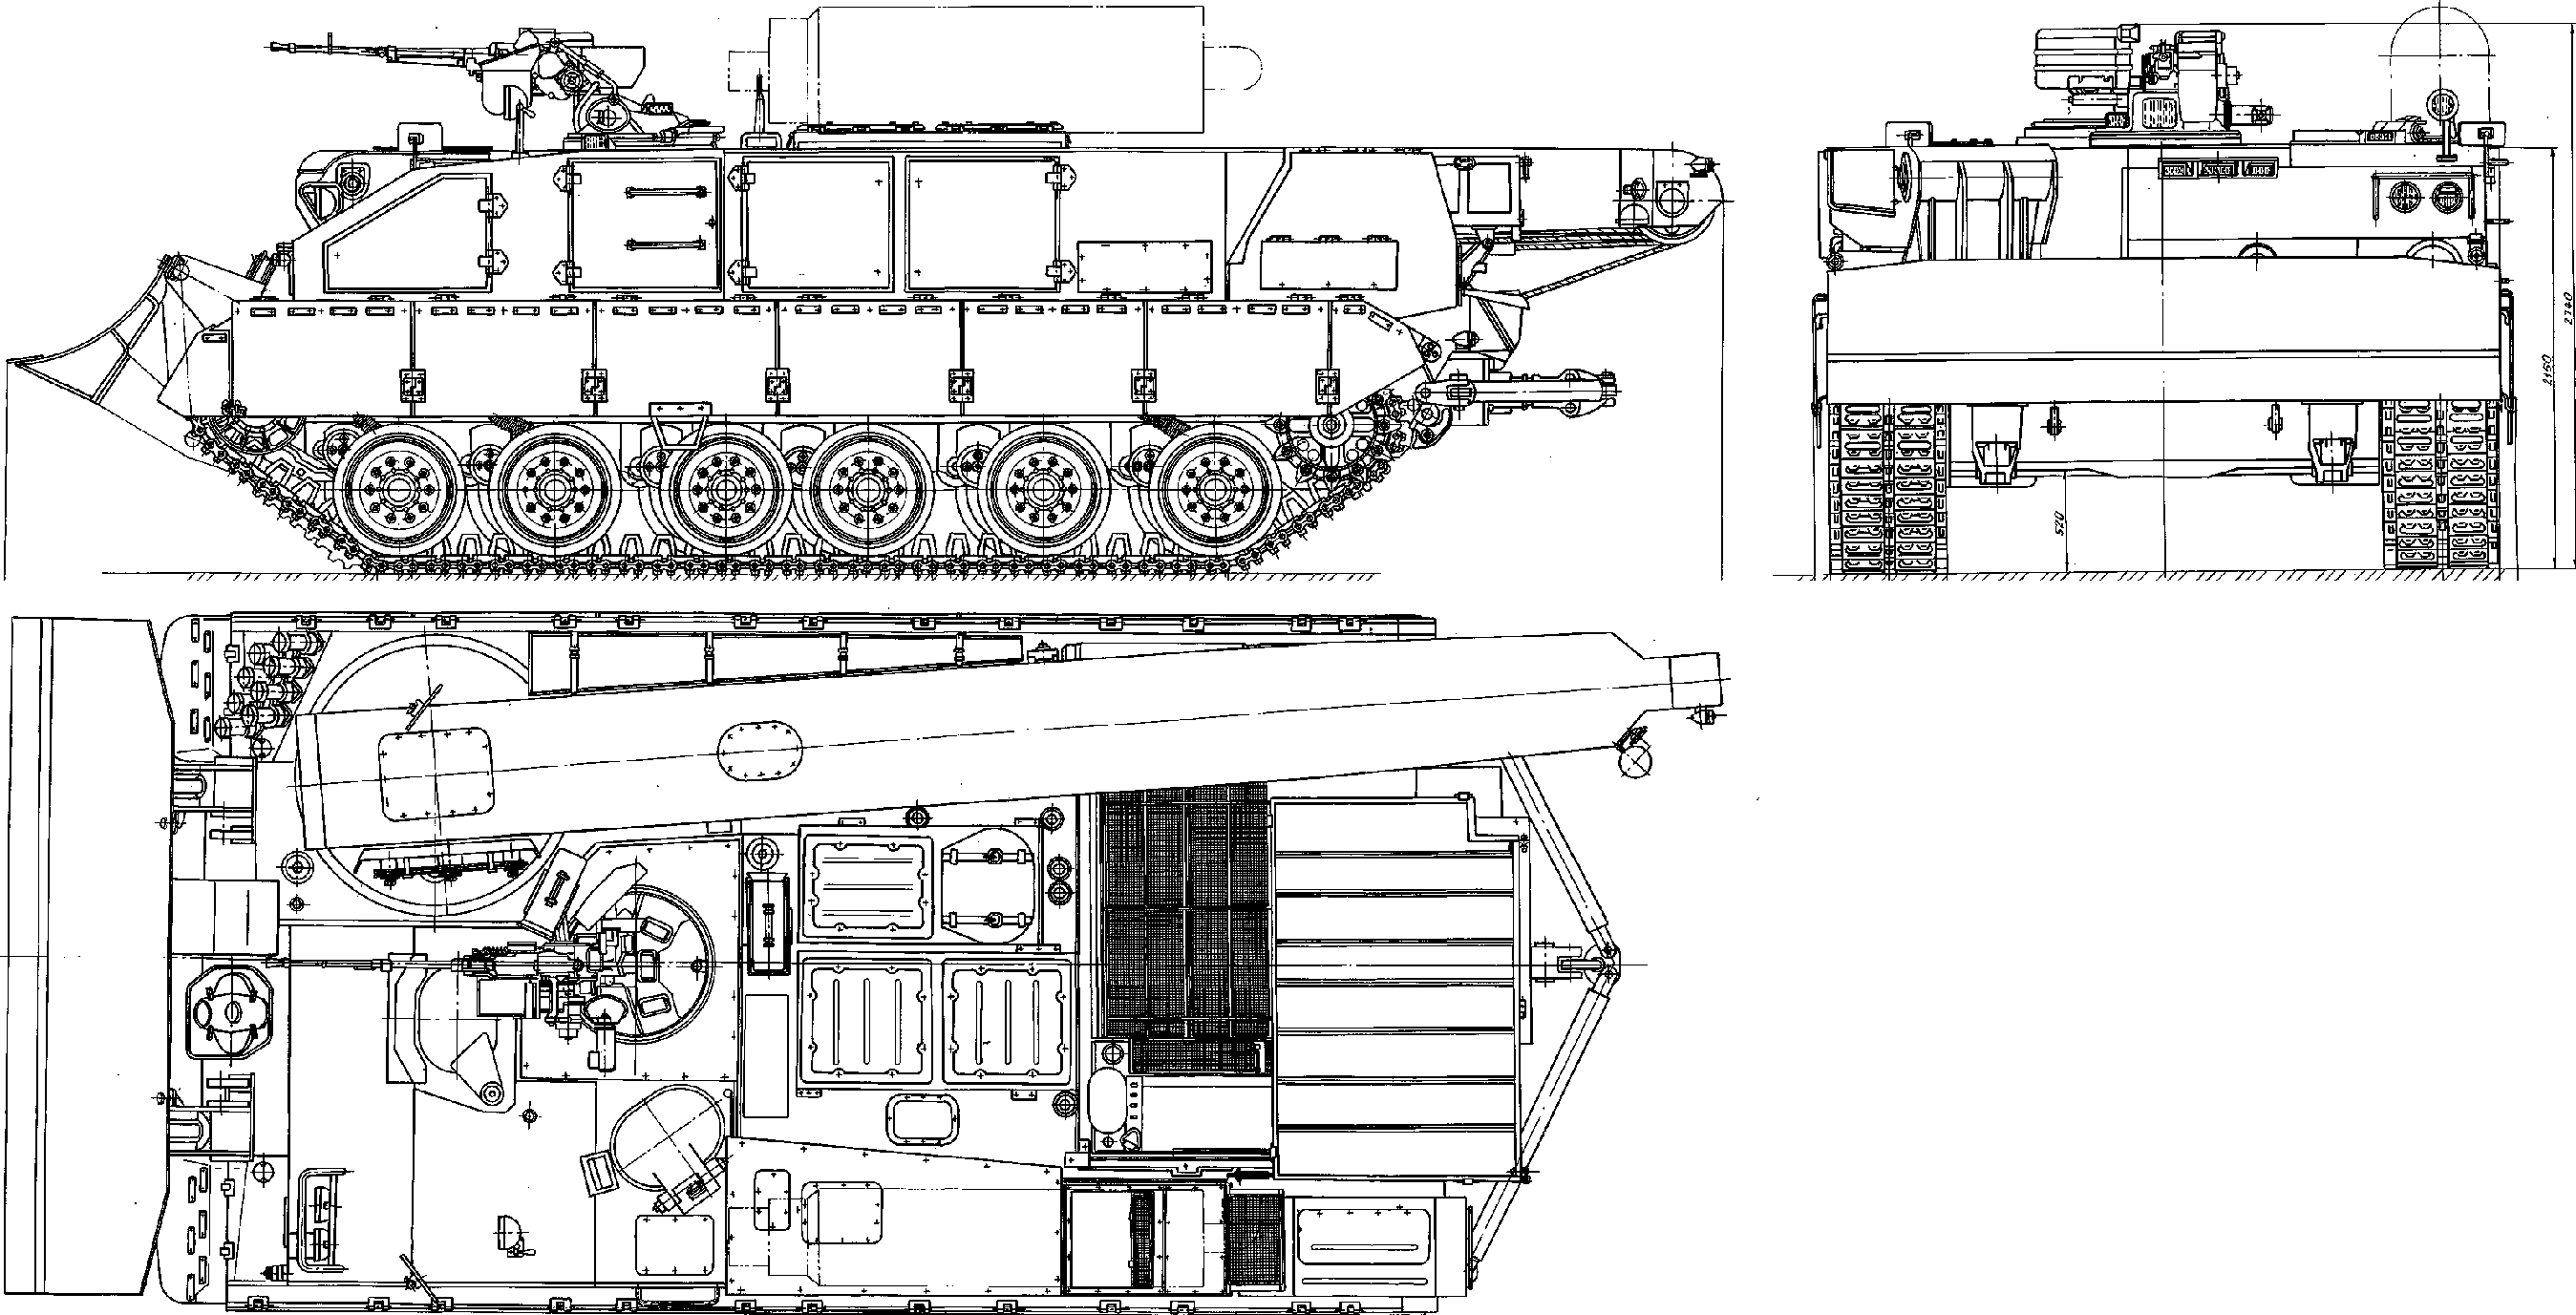 BREM-84 blueprint